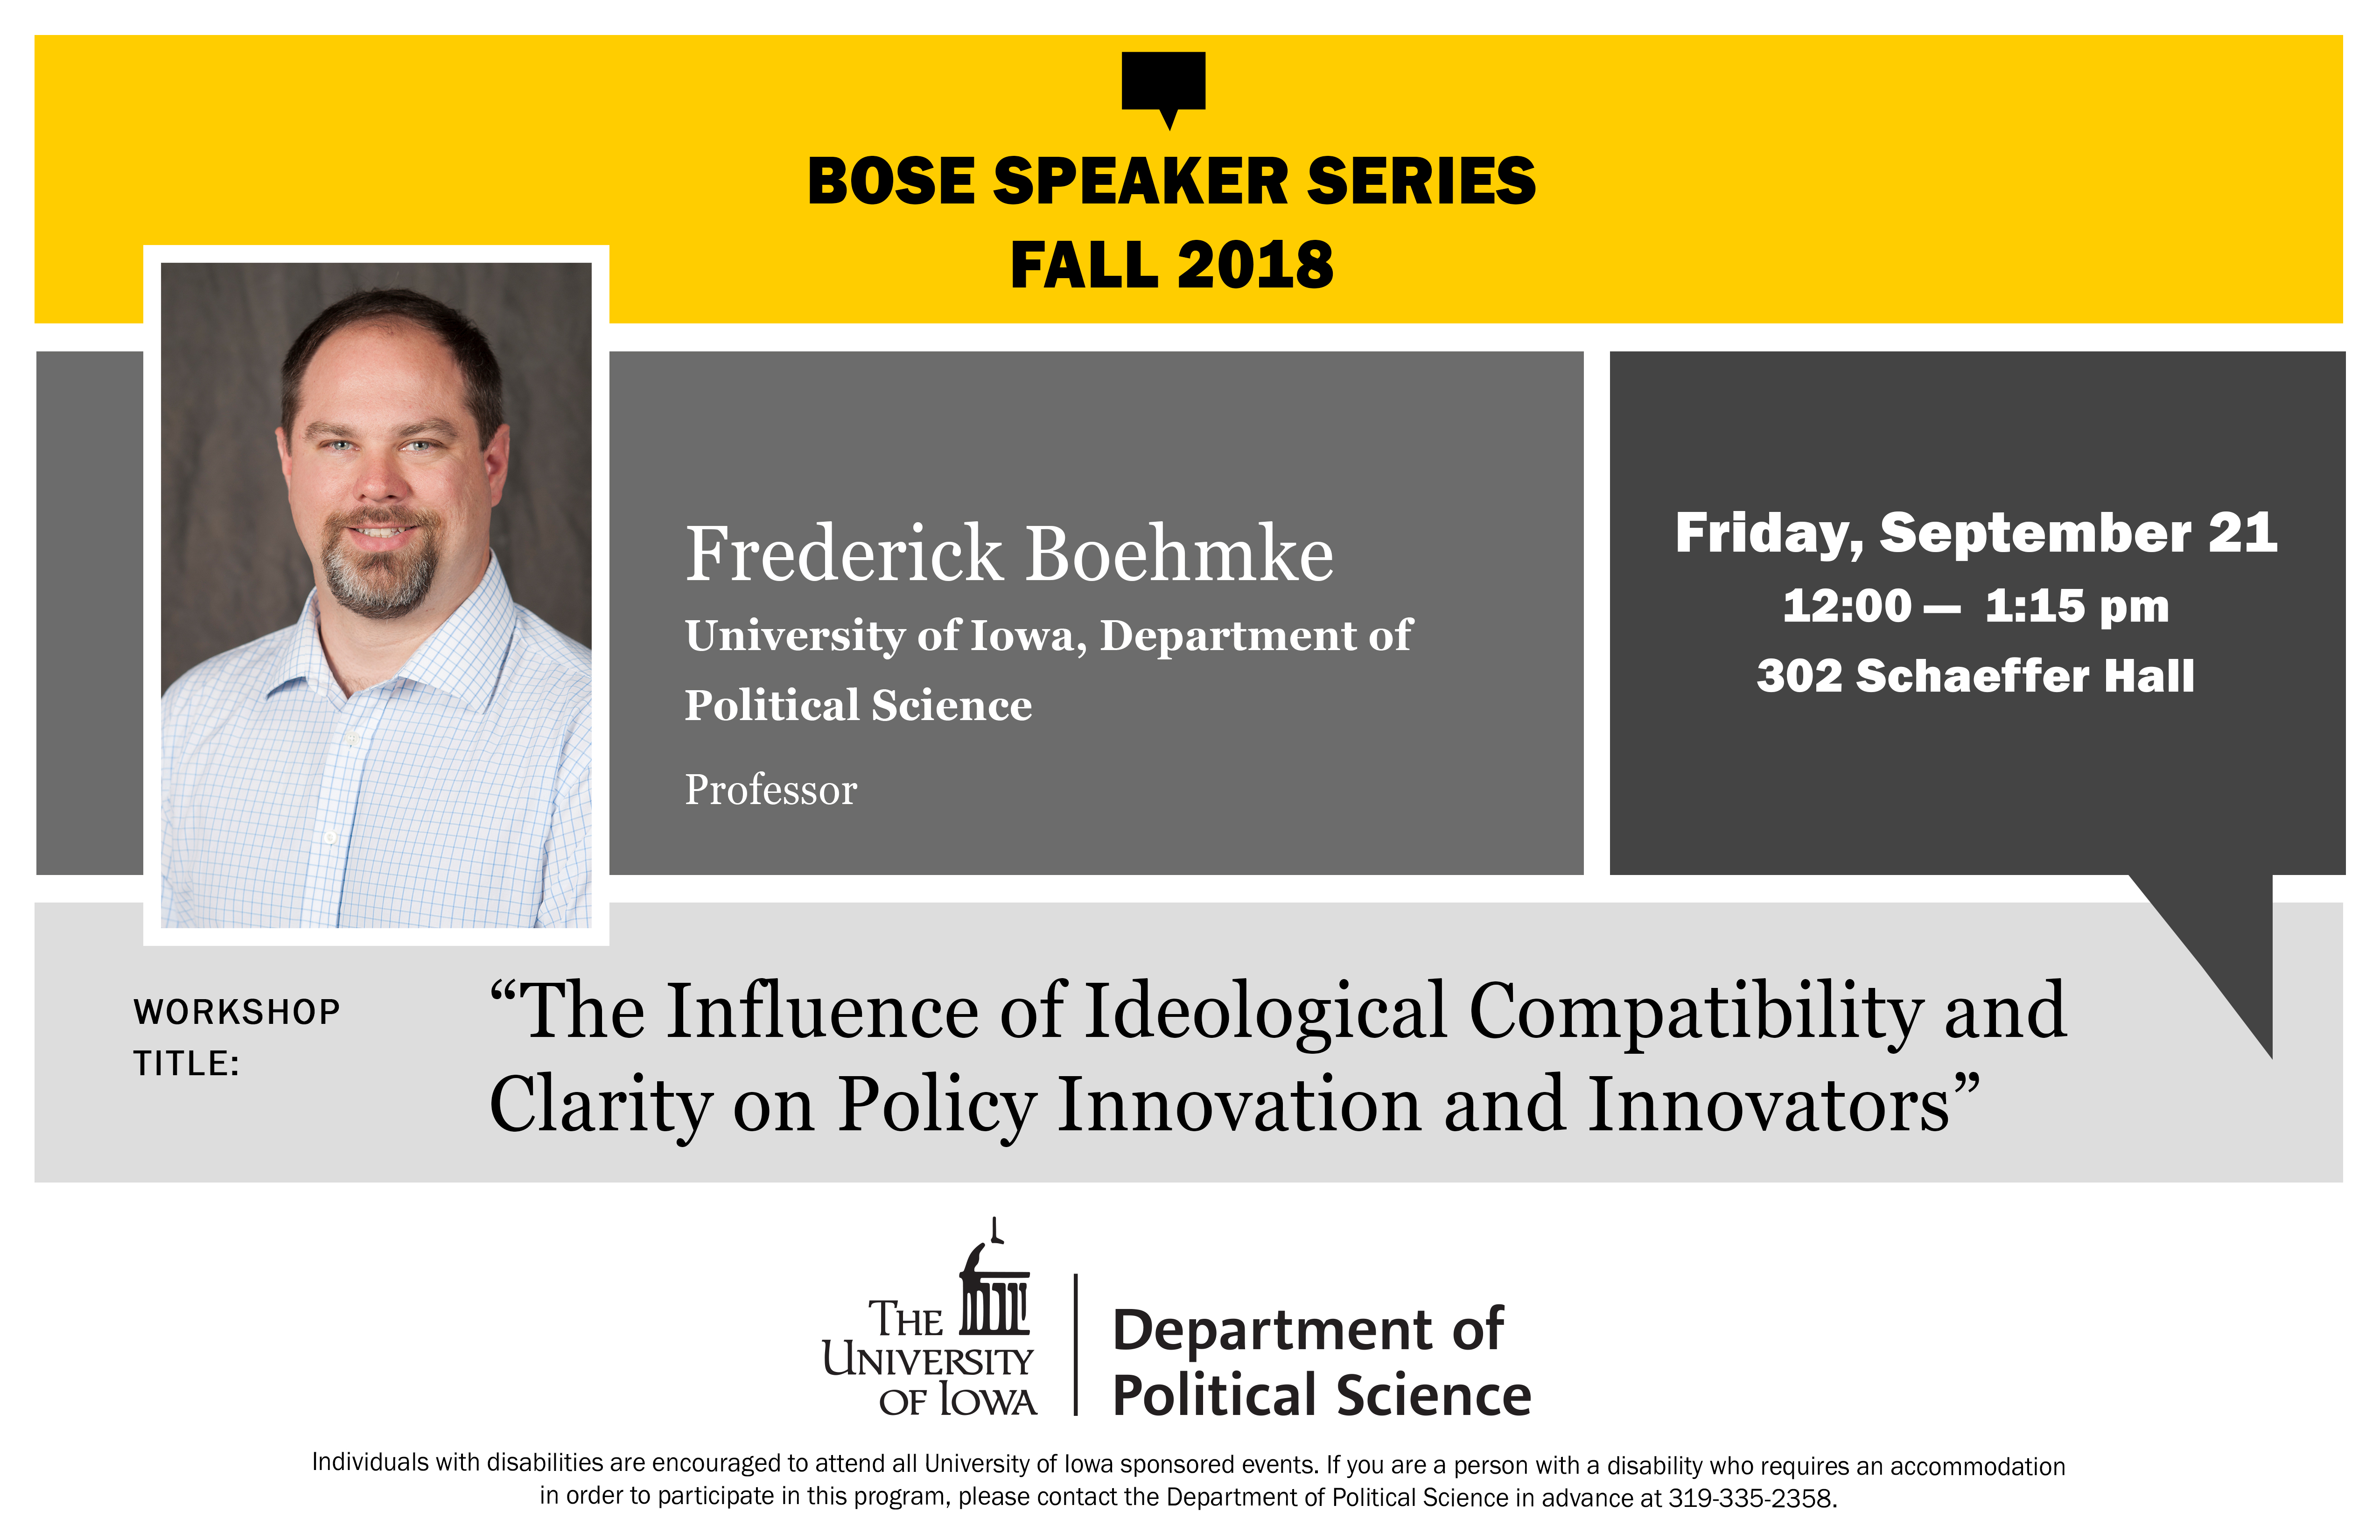 Fred Boehmke Bose Speaker Series Flyer